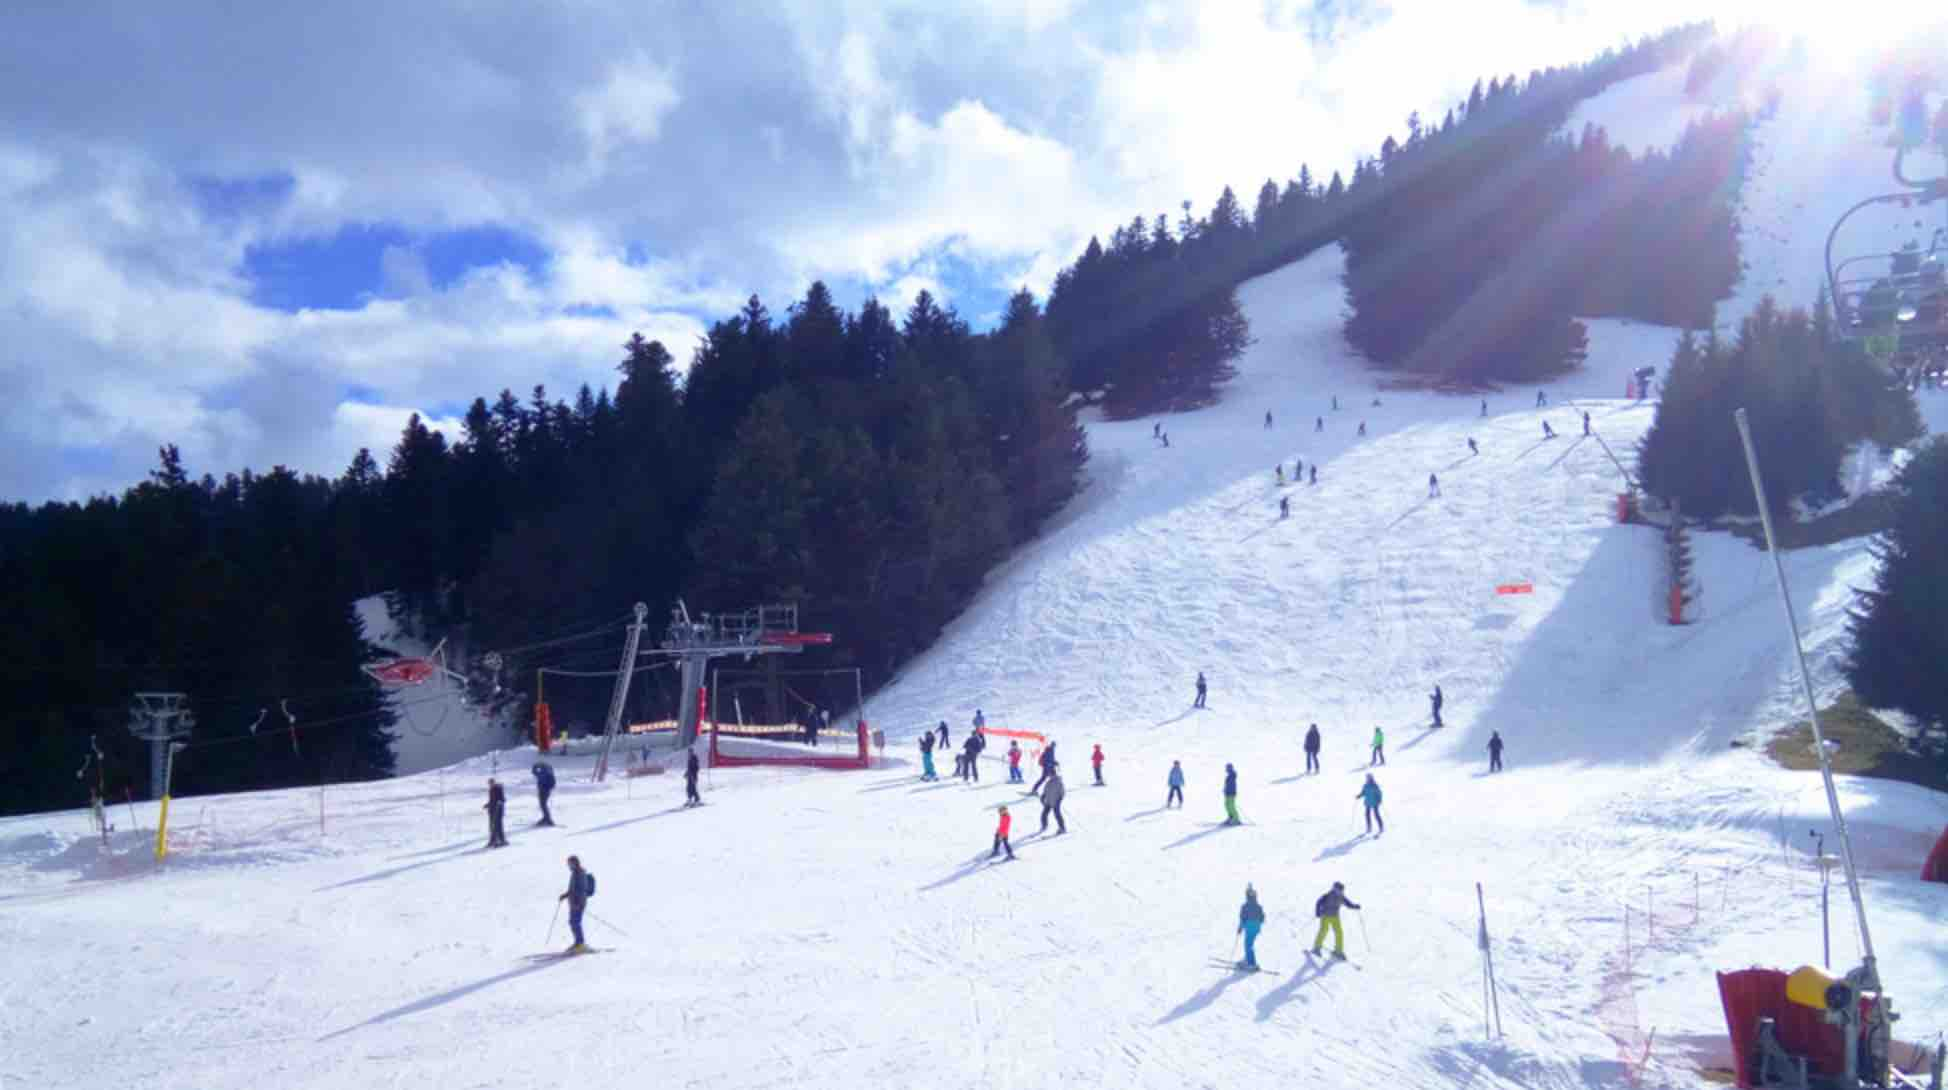 The sunny slopes of Le Mourtis